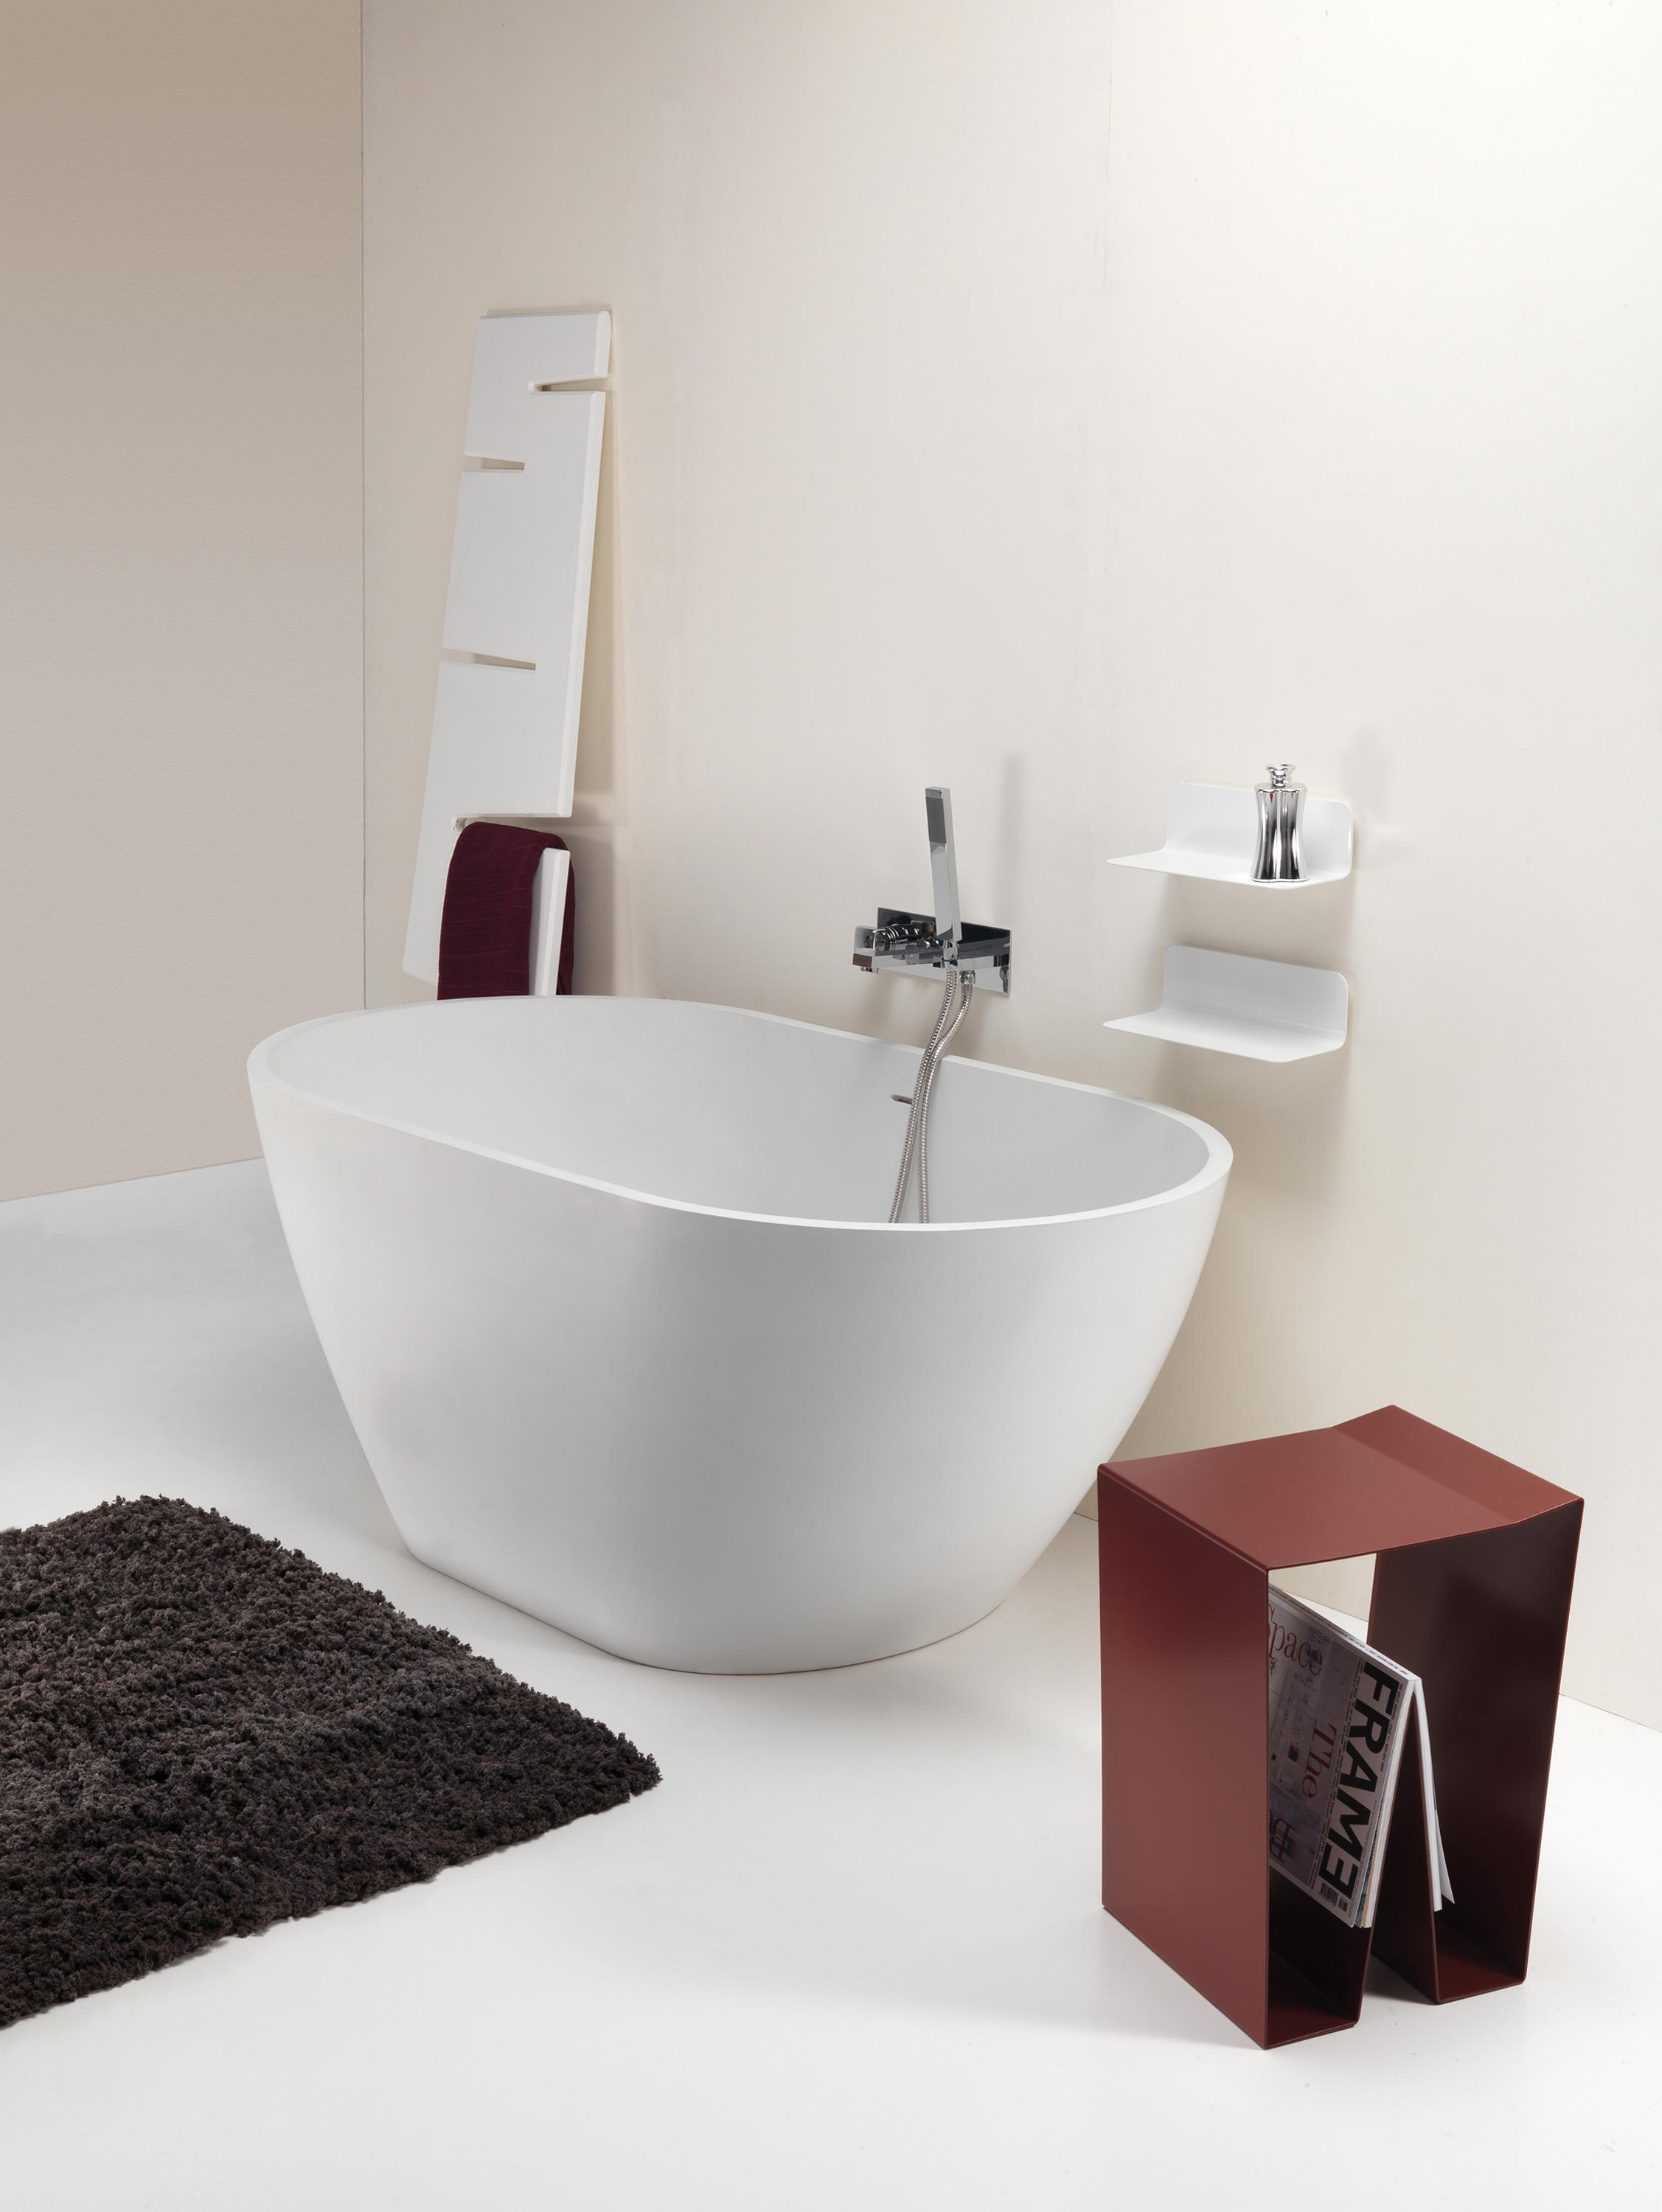 Banco De Baño Notch Wood Taburetes Bancos De Baño De Ex T Architonic